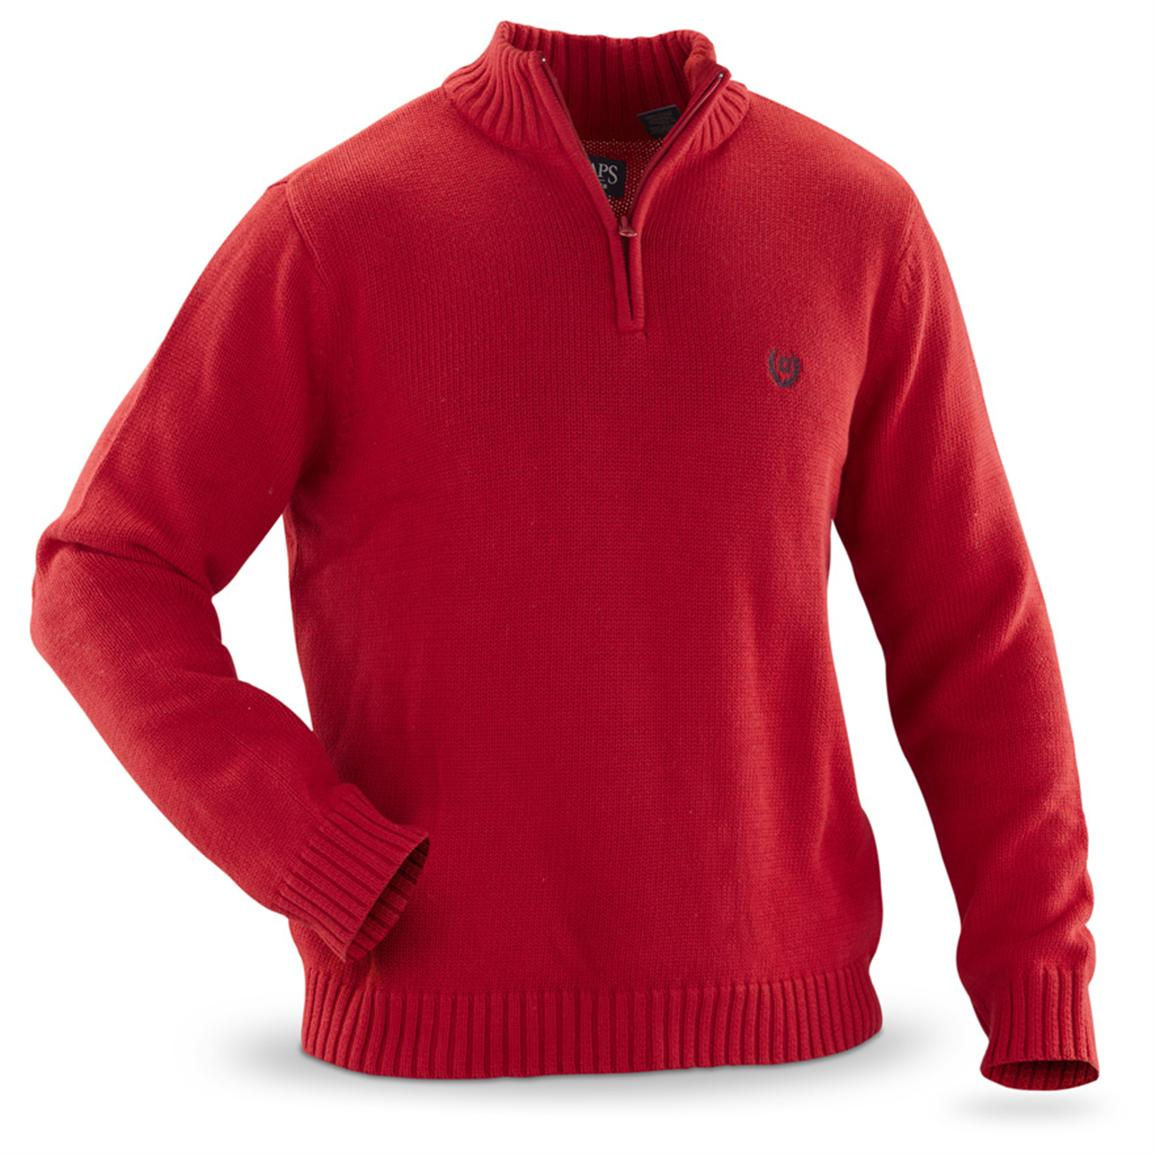 Men's Chaps® 1/4 - zip Sweater - 235973, Sweaters at Sportsman's Guide